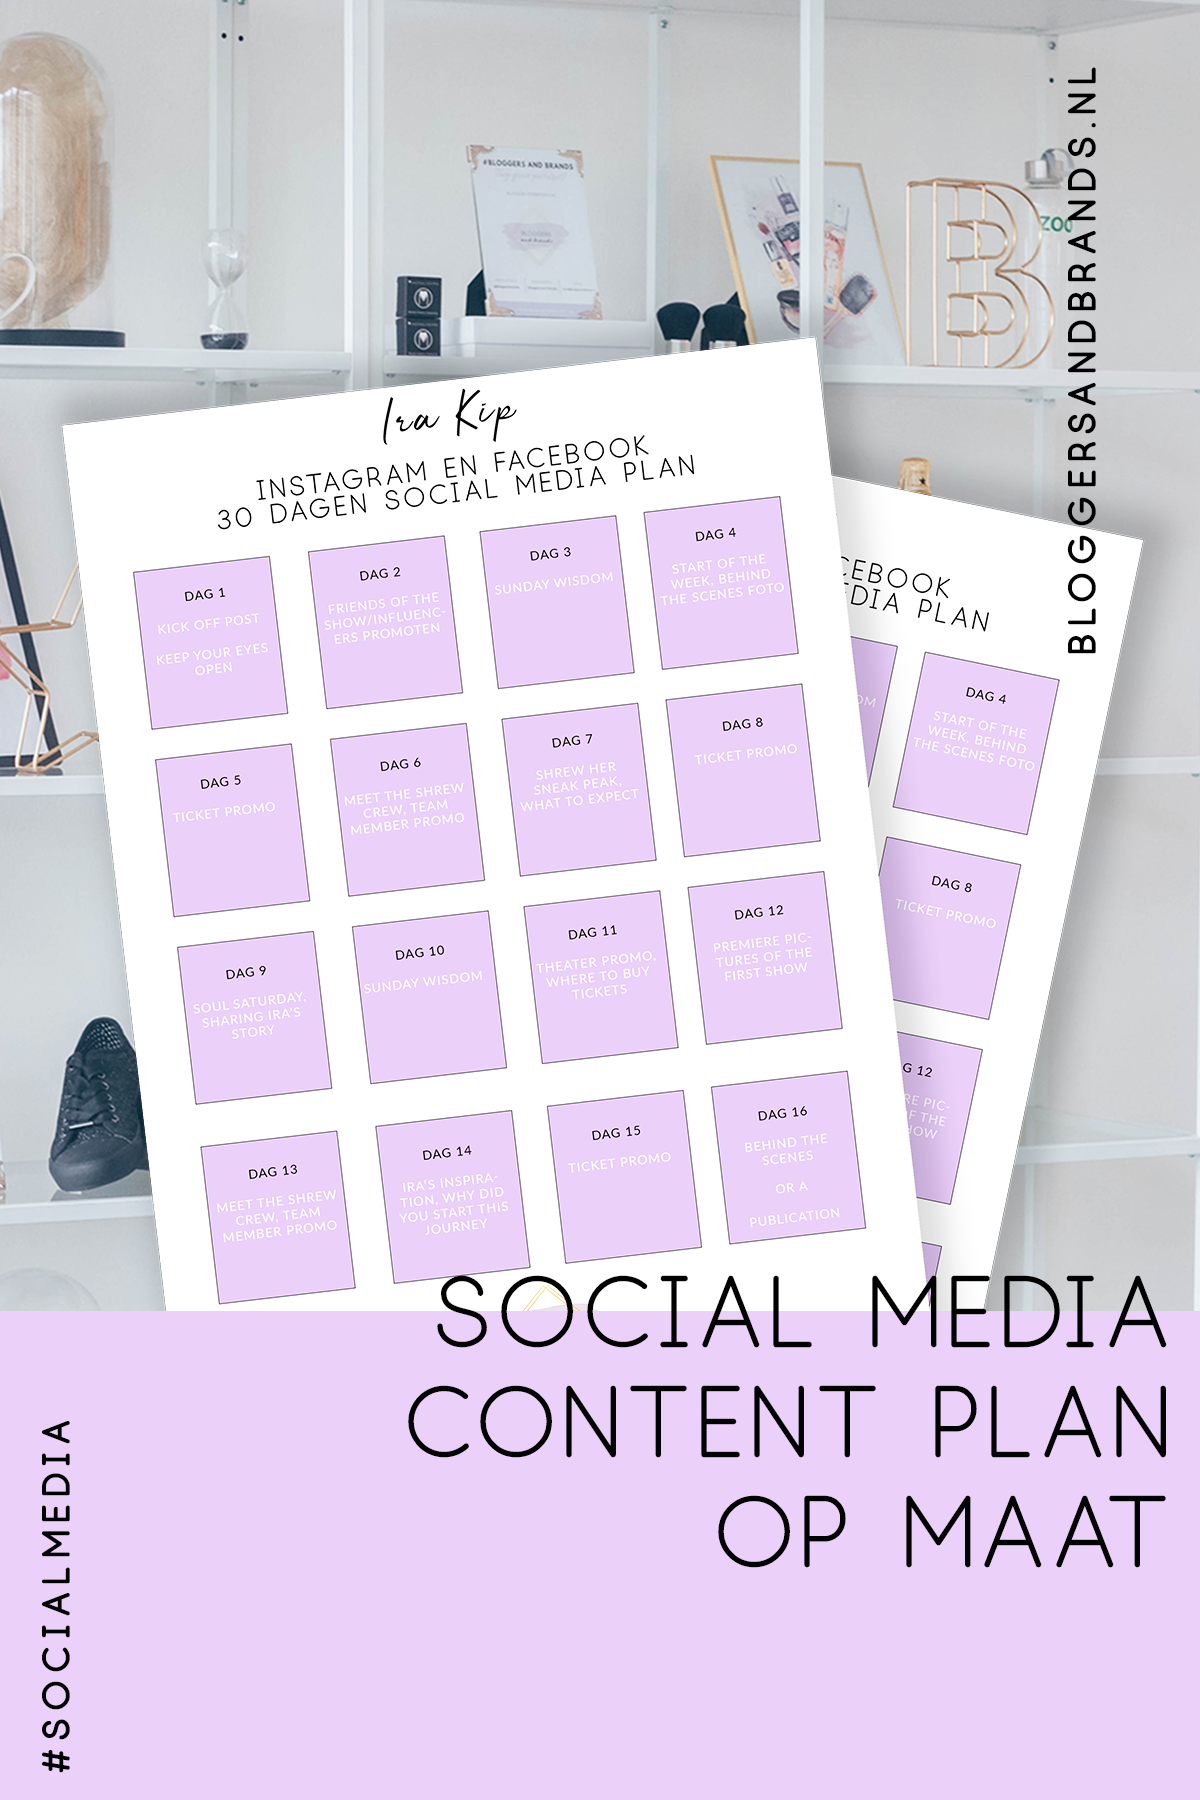 Social media content plan op maat